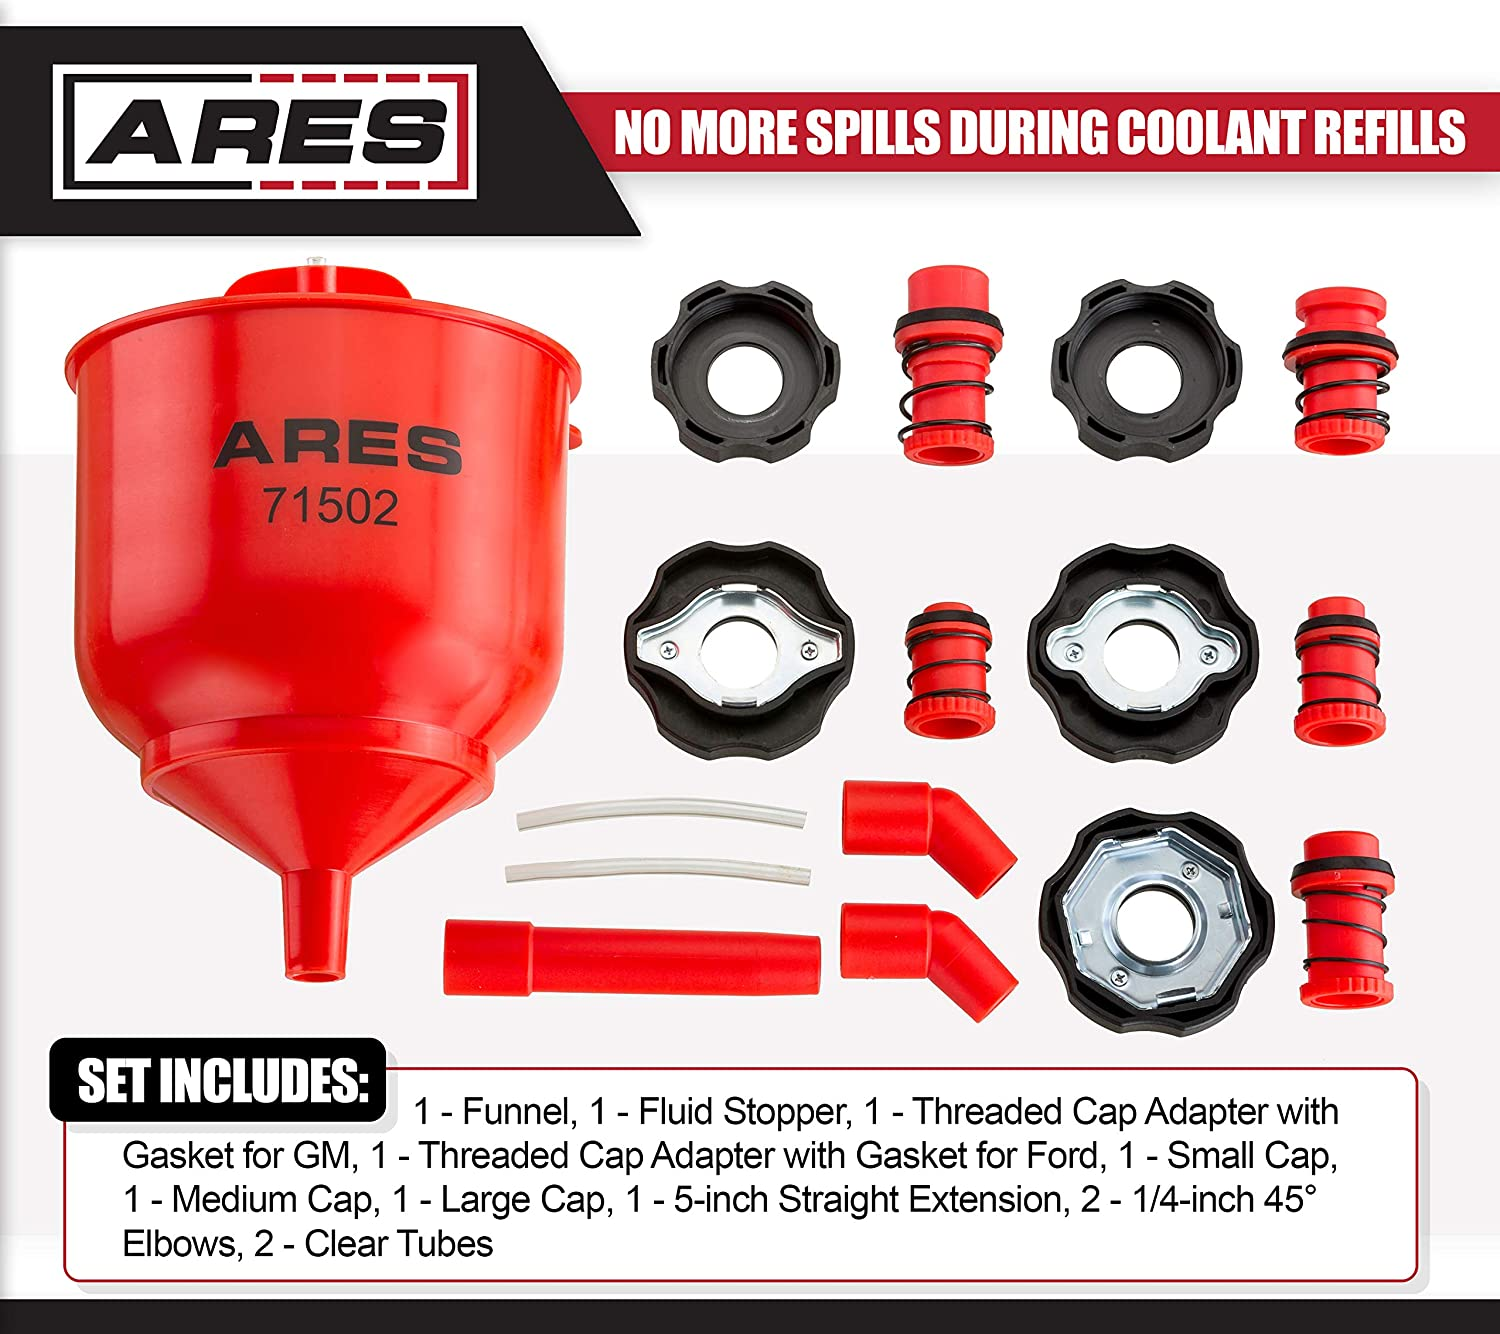 Eliminates Trapped Air Pockets and Squeaky Belts Due to Overflow ARES 71502 Spill Proof Coolant Filling Kit